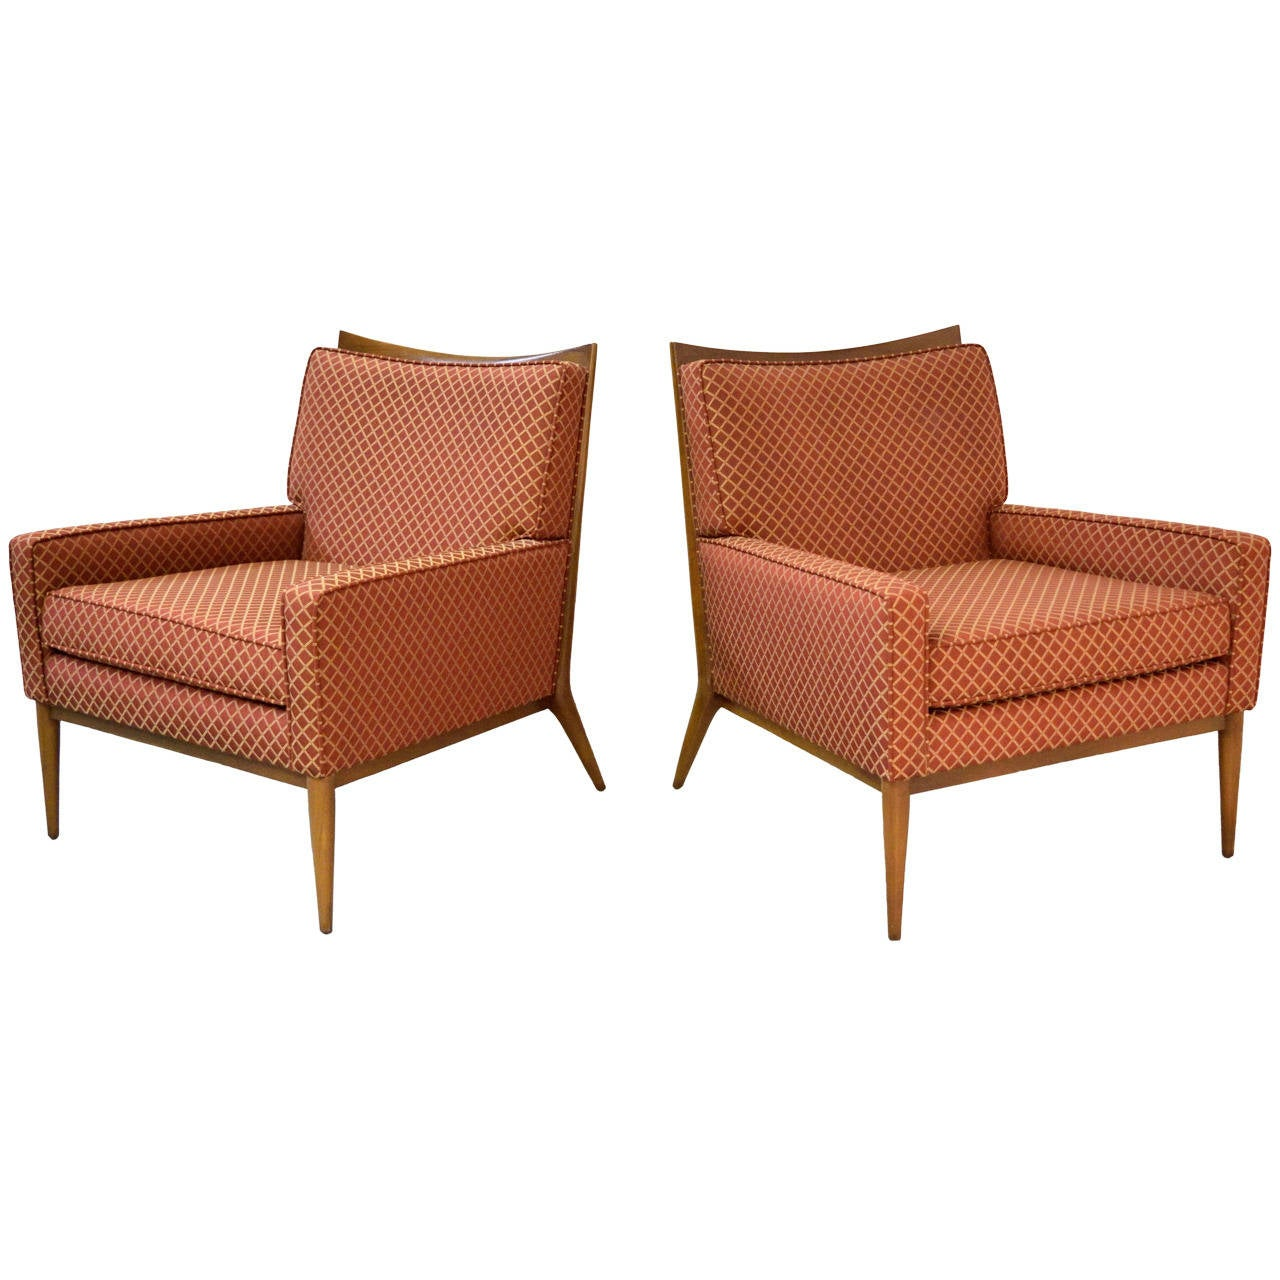 Pair of Paul McCobb for Directional Lounge Chairs